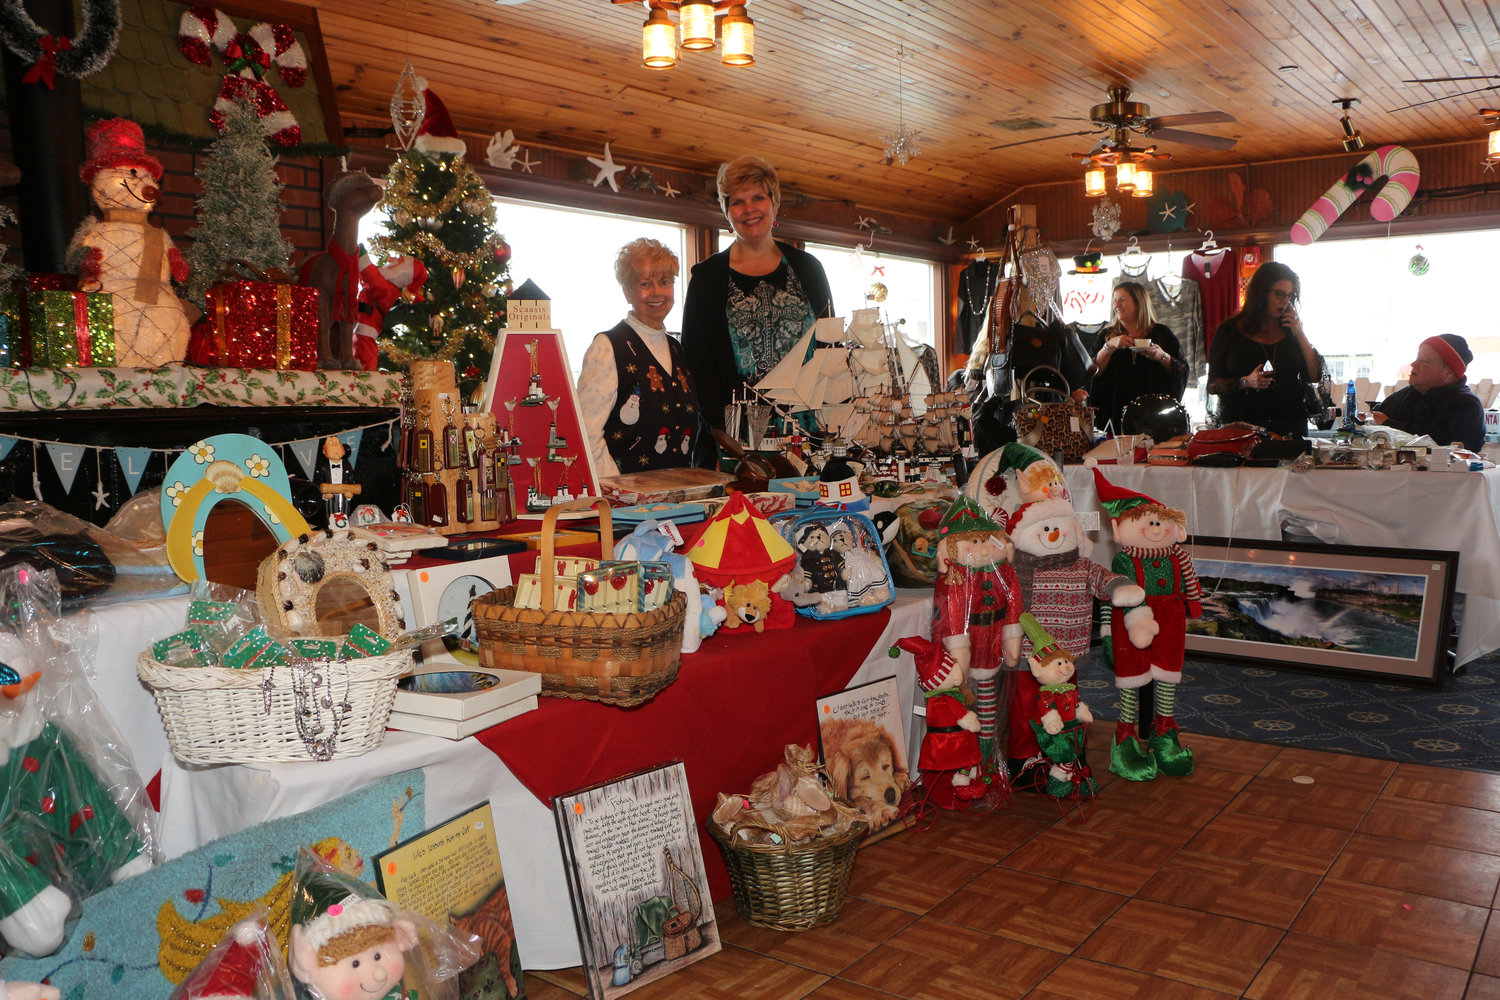 During Otto's Sea Grill Holiday Boutiques, Rosemarie Mag, left, and Illona Jagnow, owner of Otto's, sold creative Sea Shore Holiday Crafts.